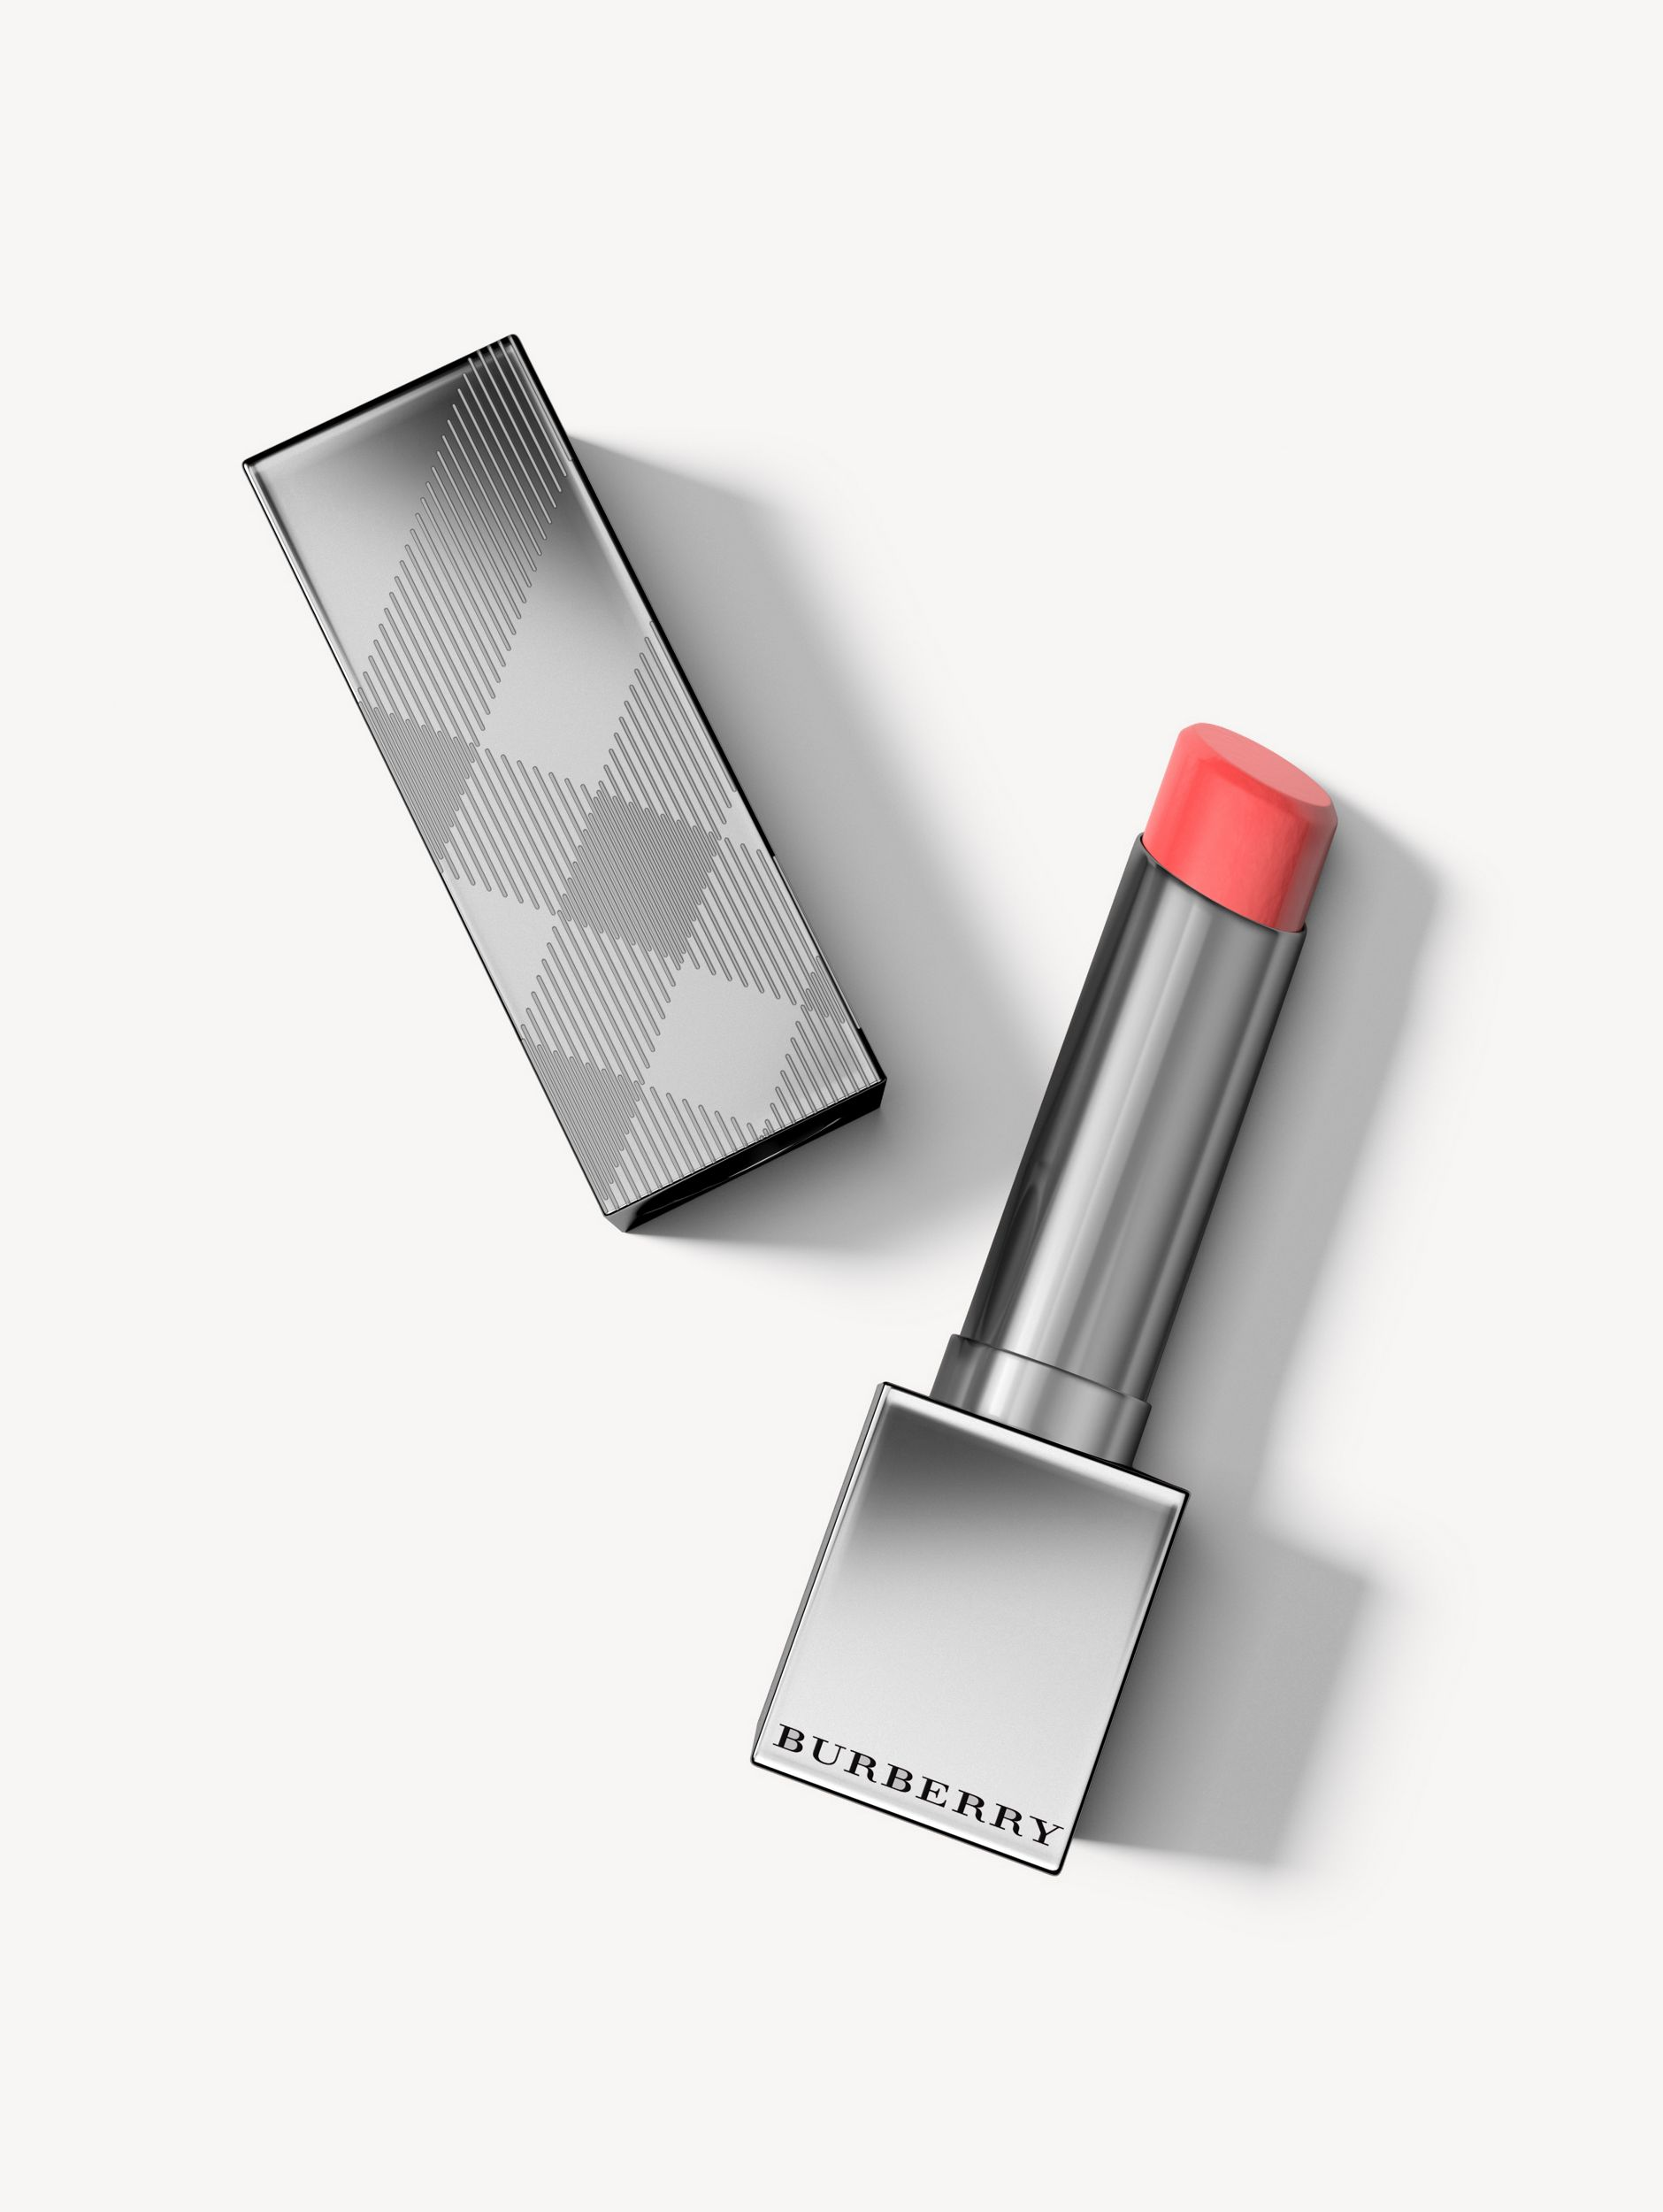 Burberry Kisses Sheer – Coral Pink No.265 - Women | Burberry United Kingdom - 1